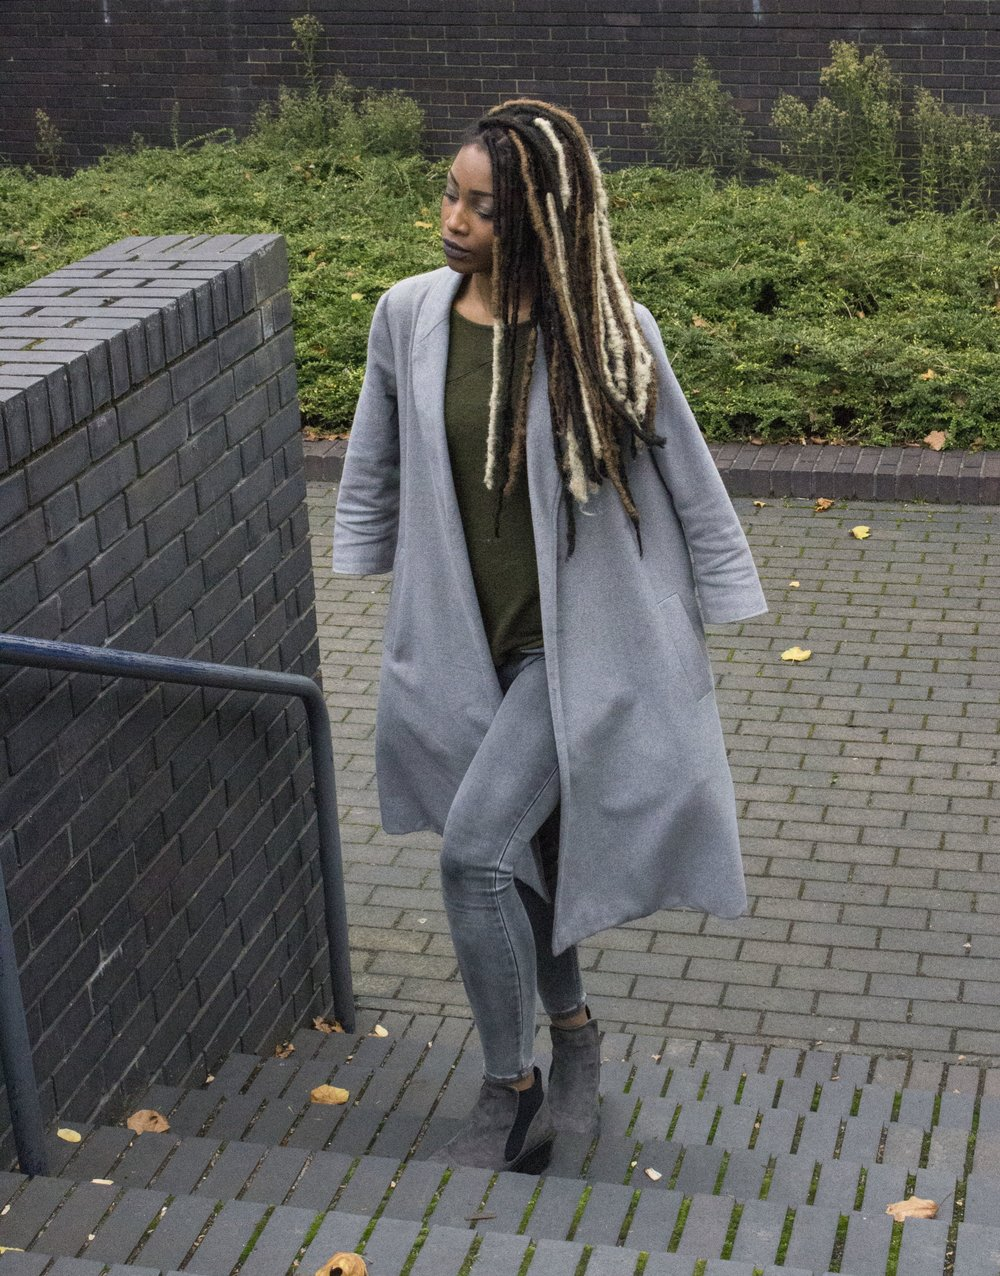 Coat - Amazon    Scarf and jumper - Zara    Jeans and boots - New Look    Watch - Wish    Bag - JustFab